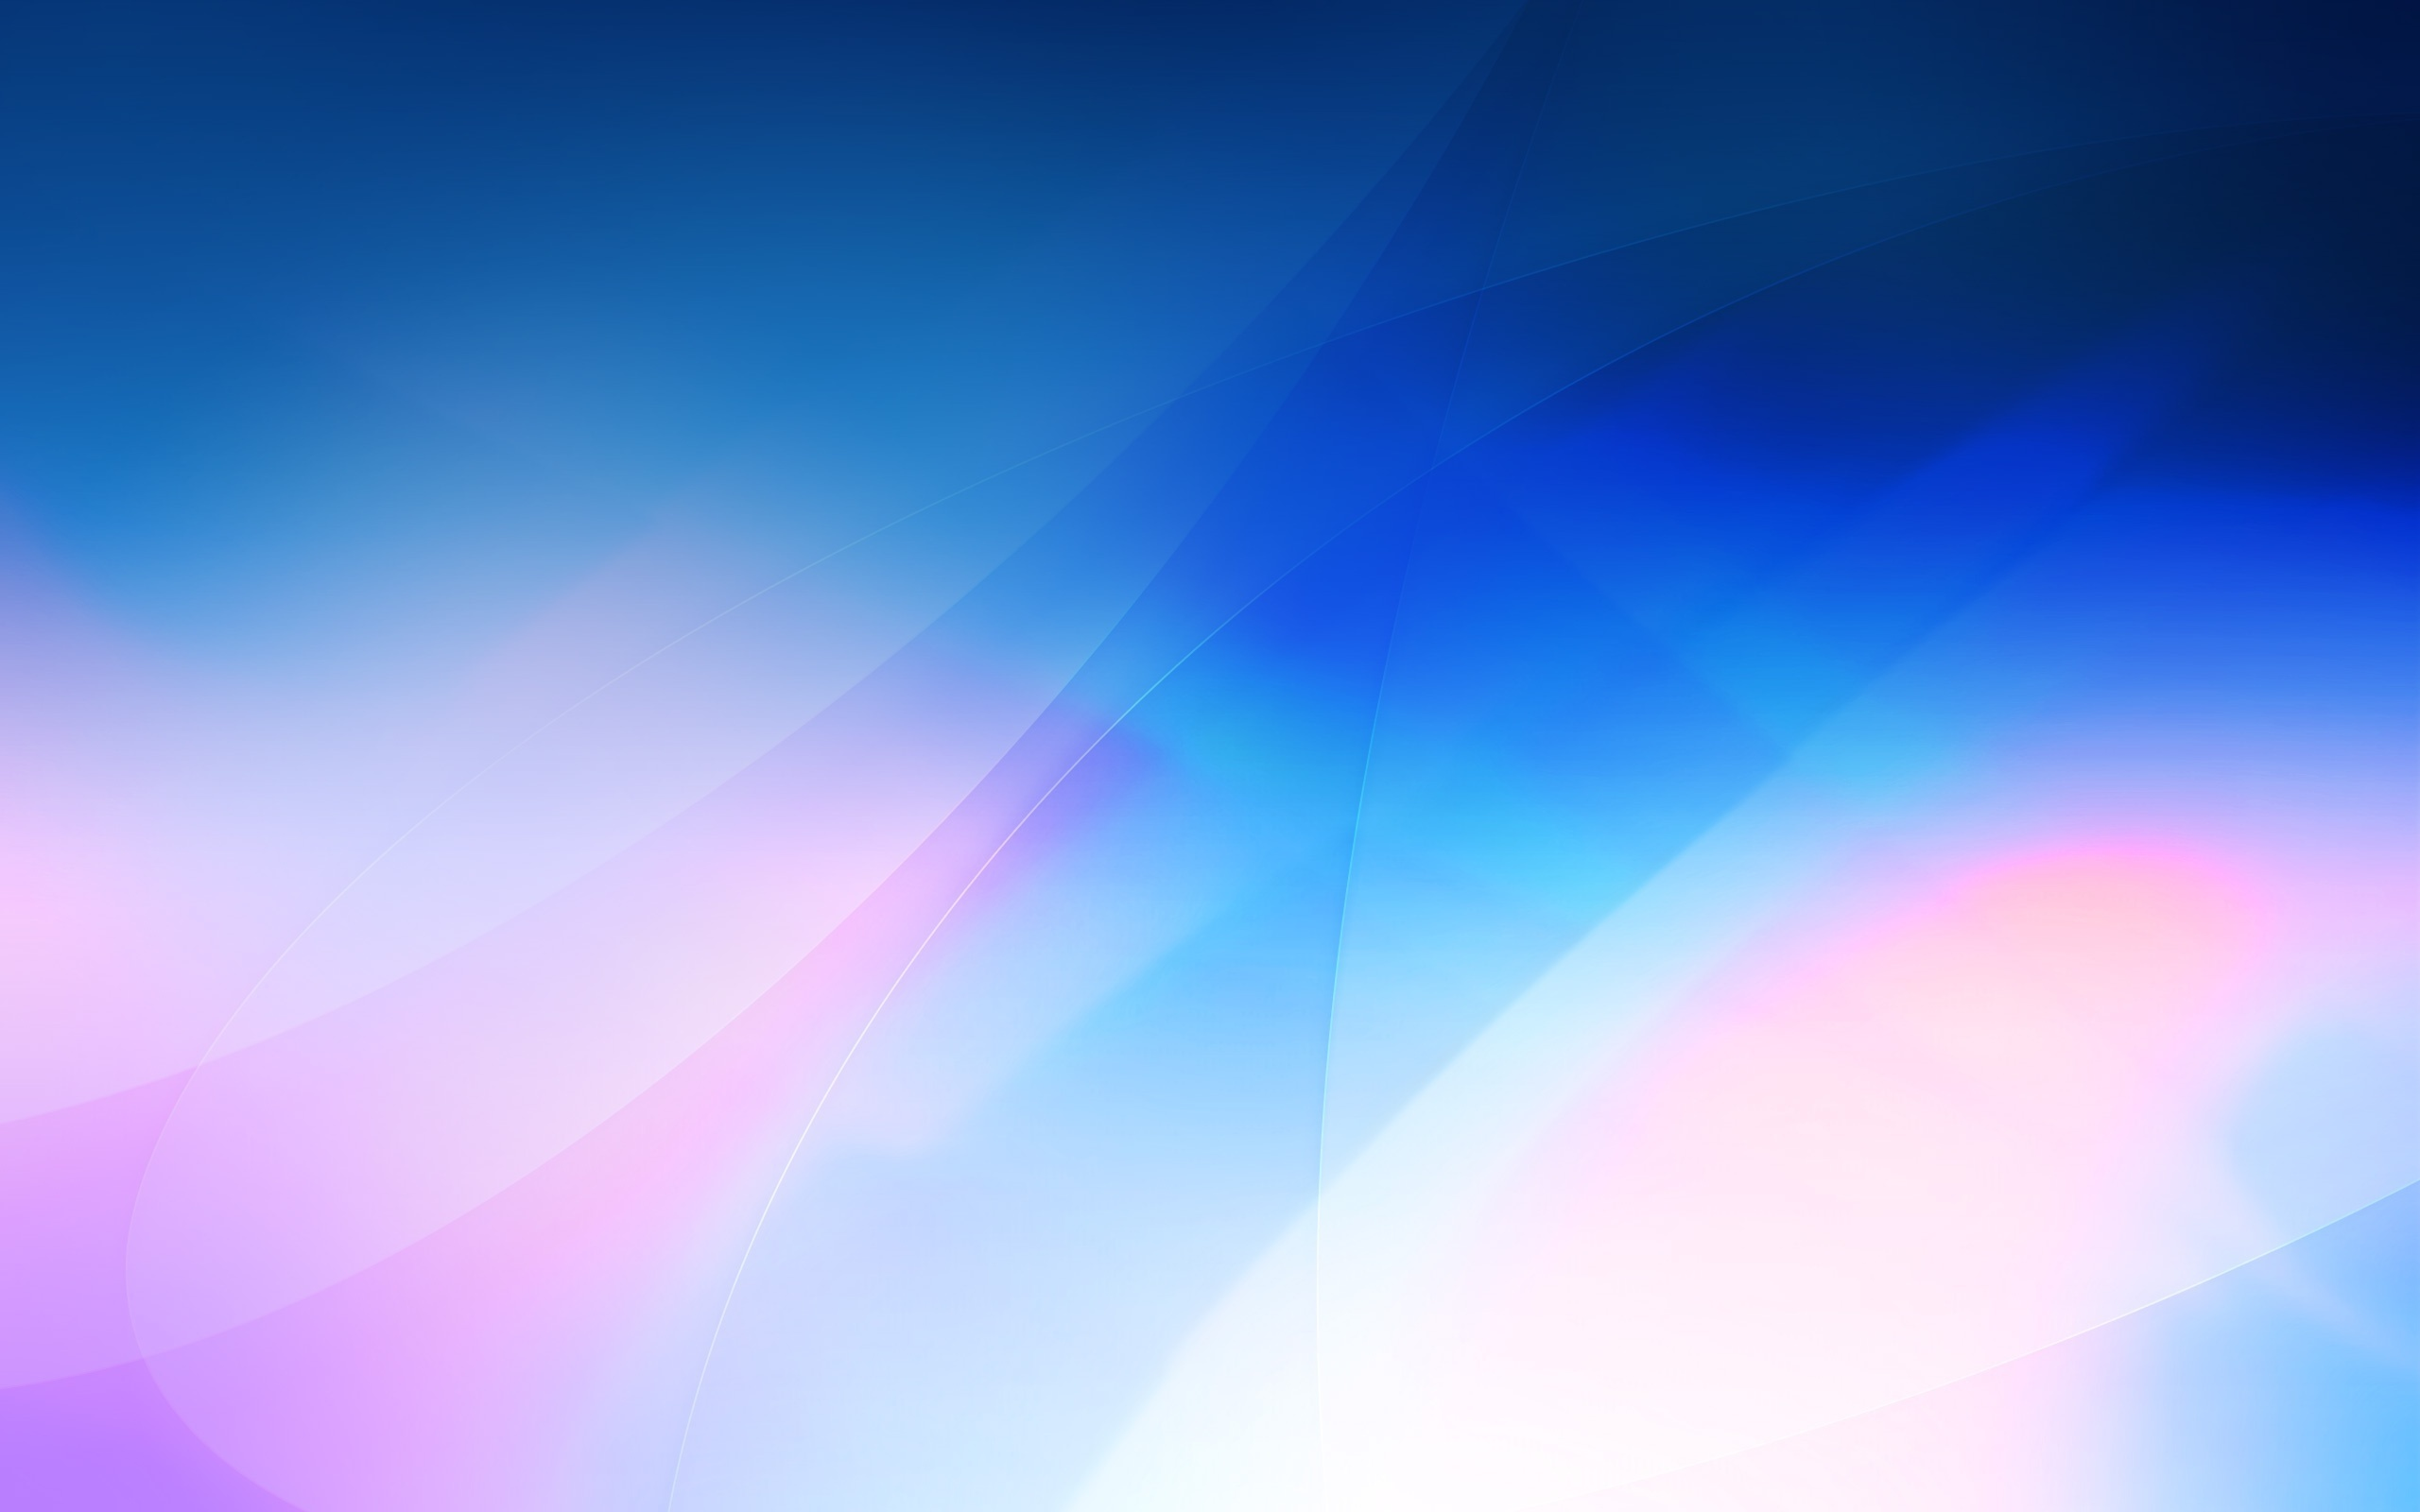 pink-and-blue-abstract-background-wallpaper-15792 - New Muslim Academy